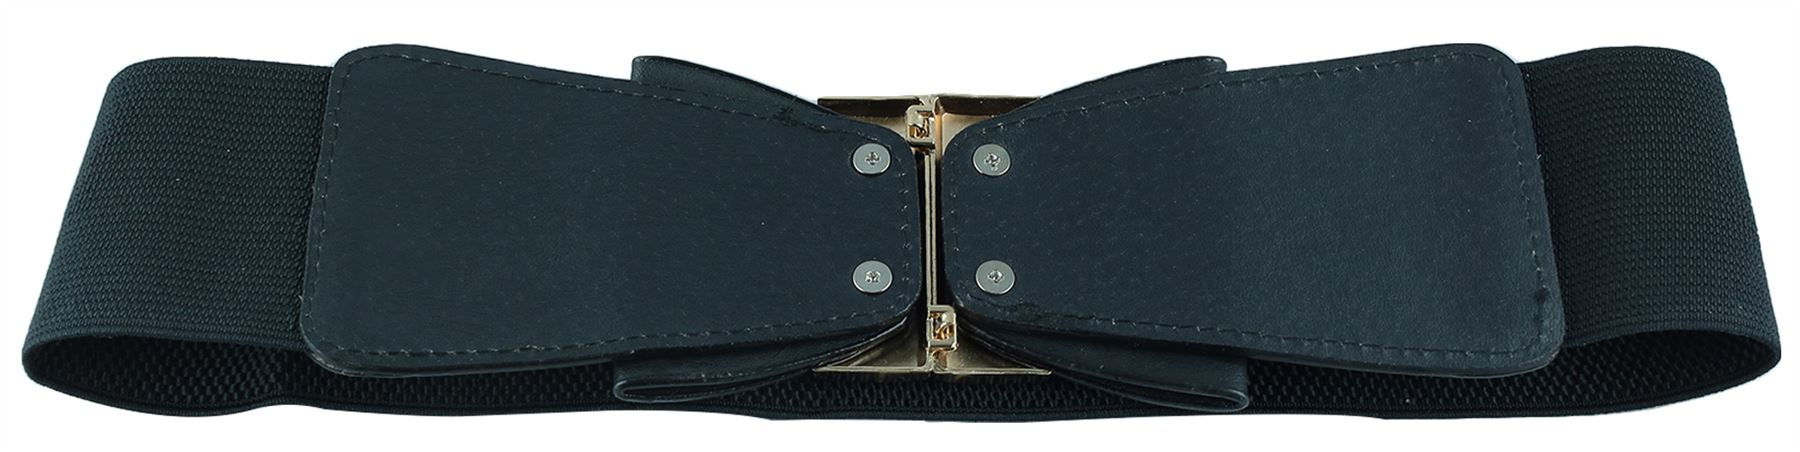 Ladies-Elasticated-Pu-Double-Bow-Stretch-Interlock-Buckle-Cinch-Belts-One-Size